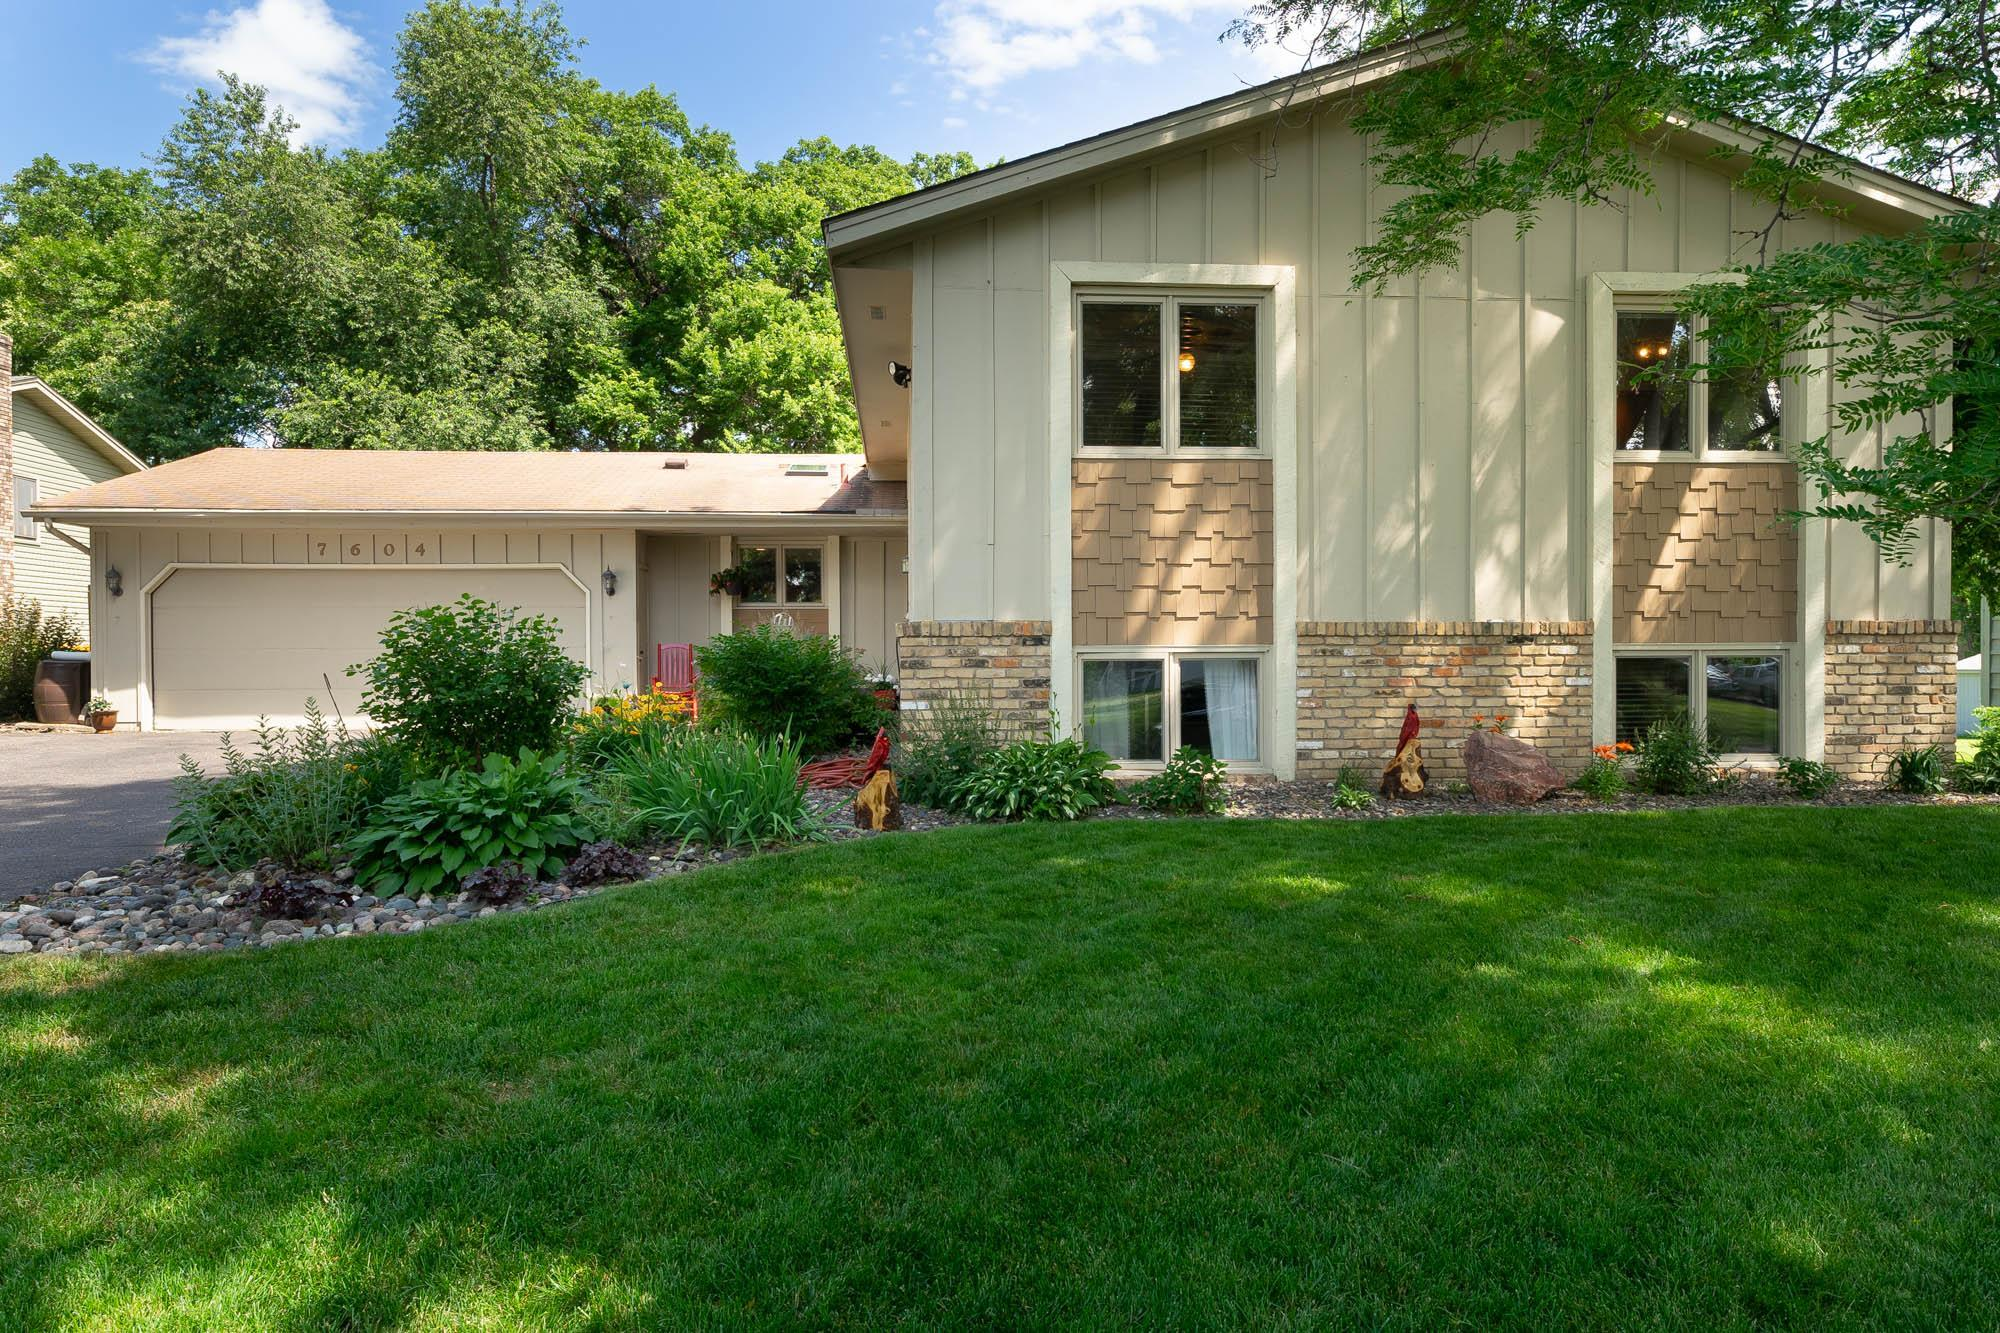 7604 48th Circle N Property Photo - New Hope, MN real estate listing